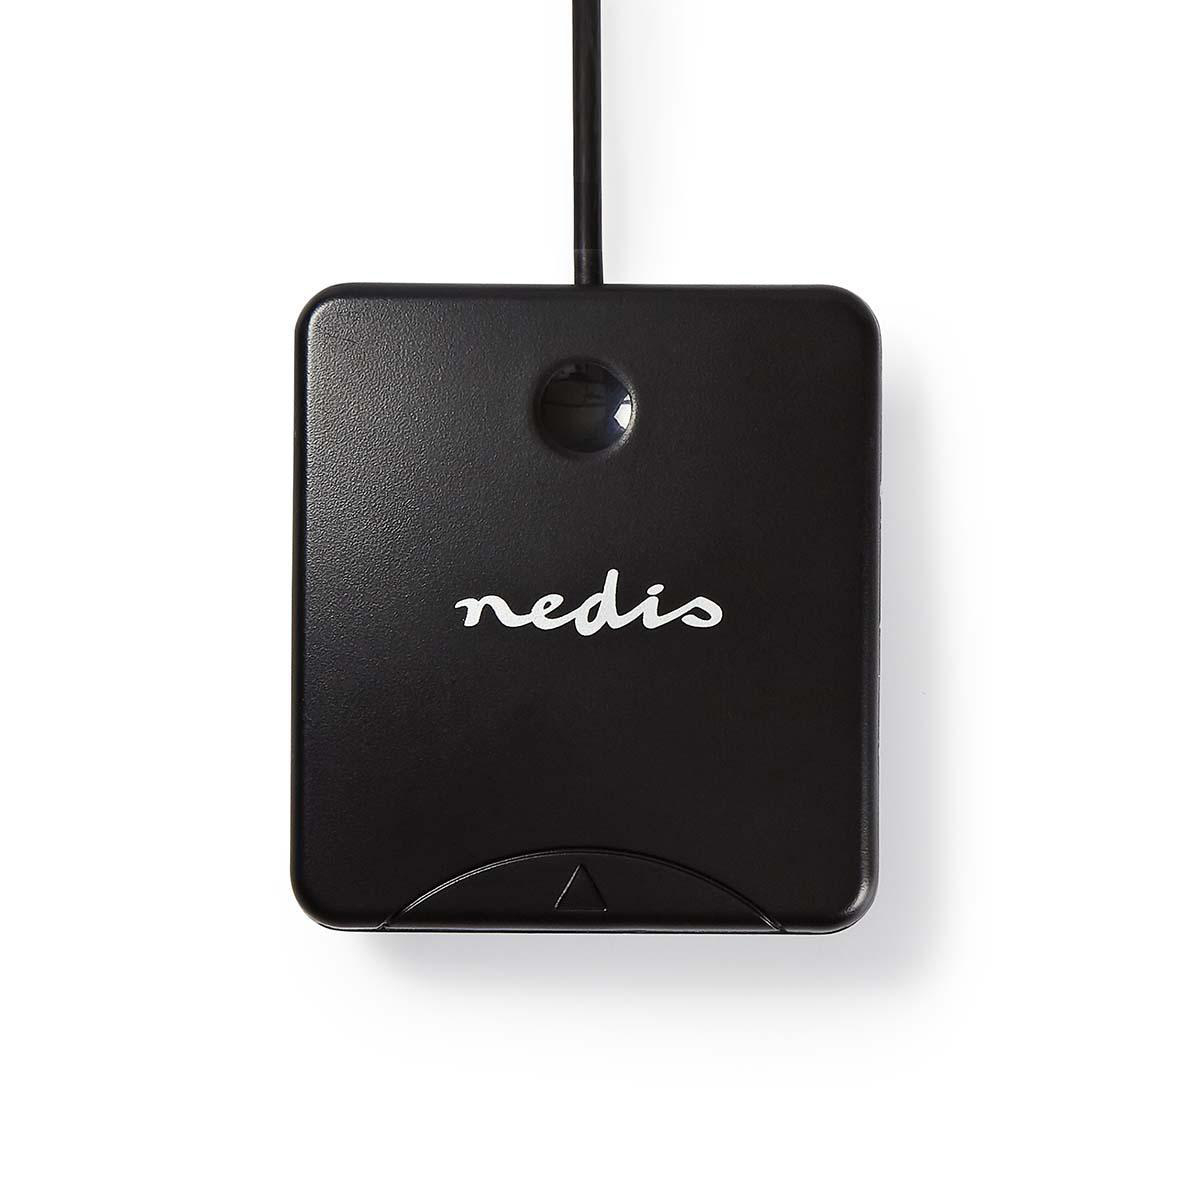 Card Reader | Smart Card | Software Included | USB 2 0 | Nedis